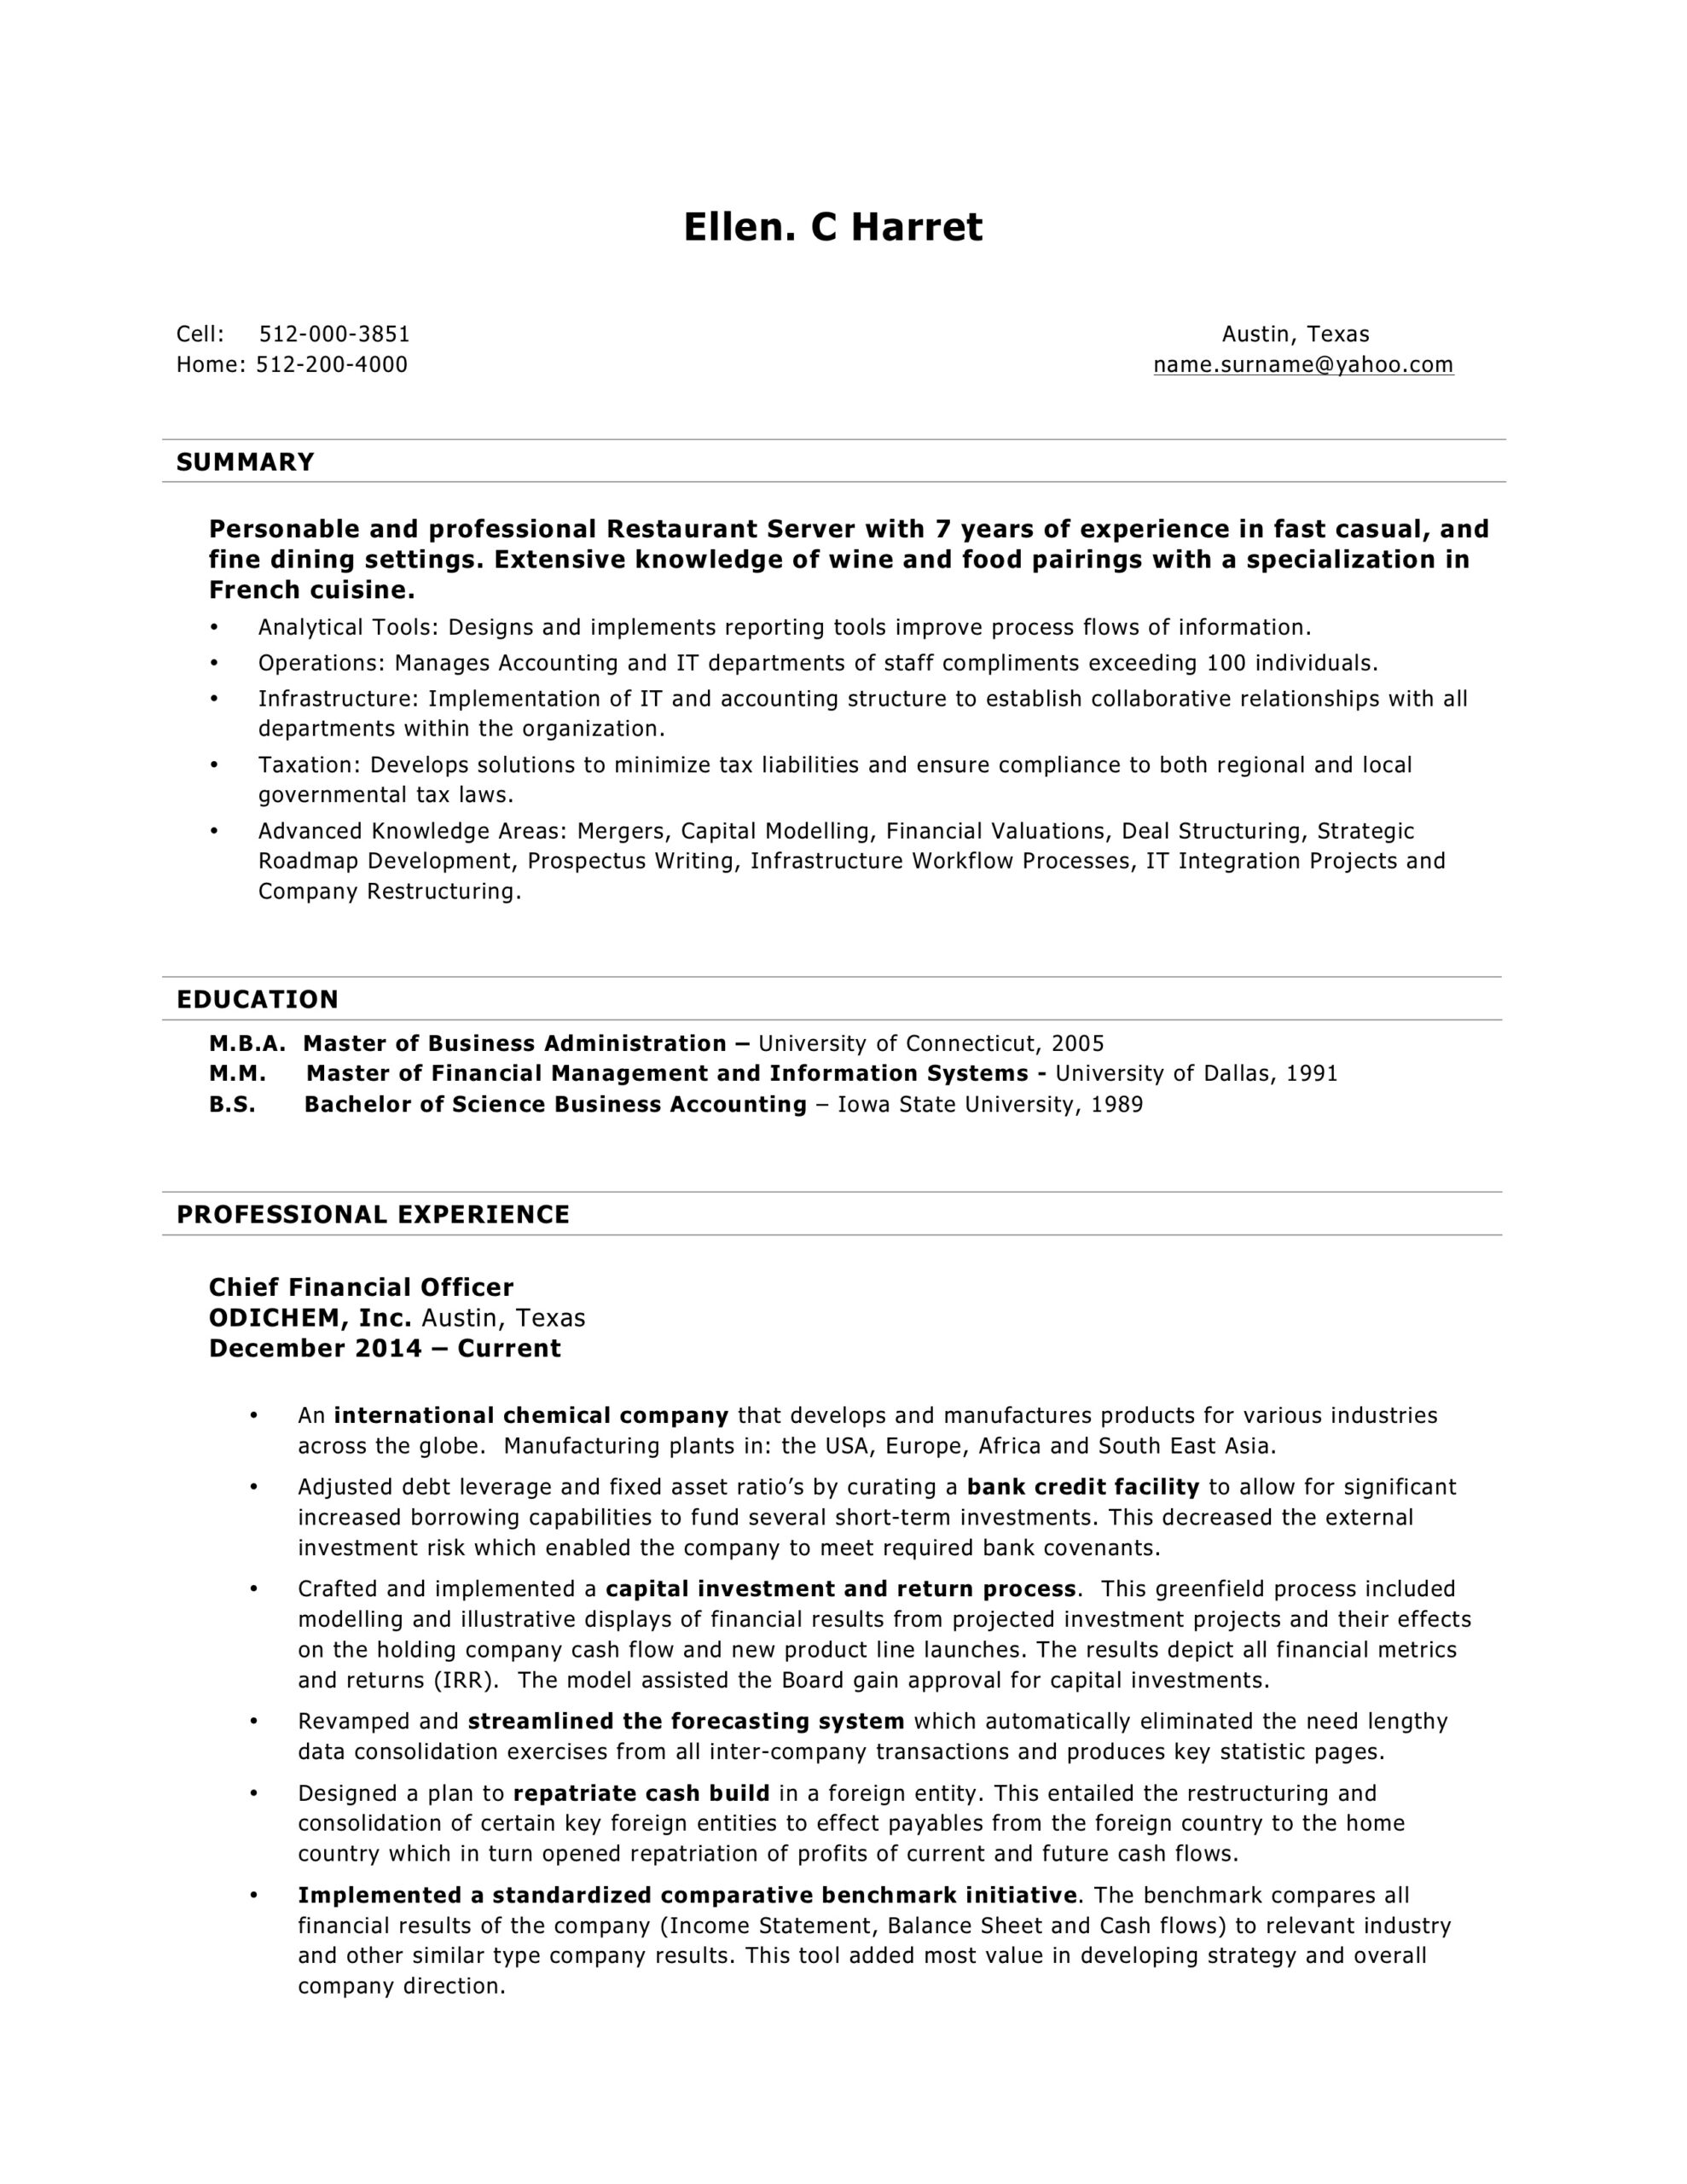 resume formats chronological functional combo summary format for server word template Resume Summary Format For Resume